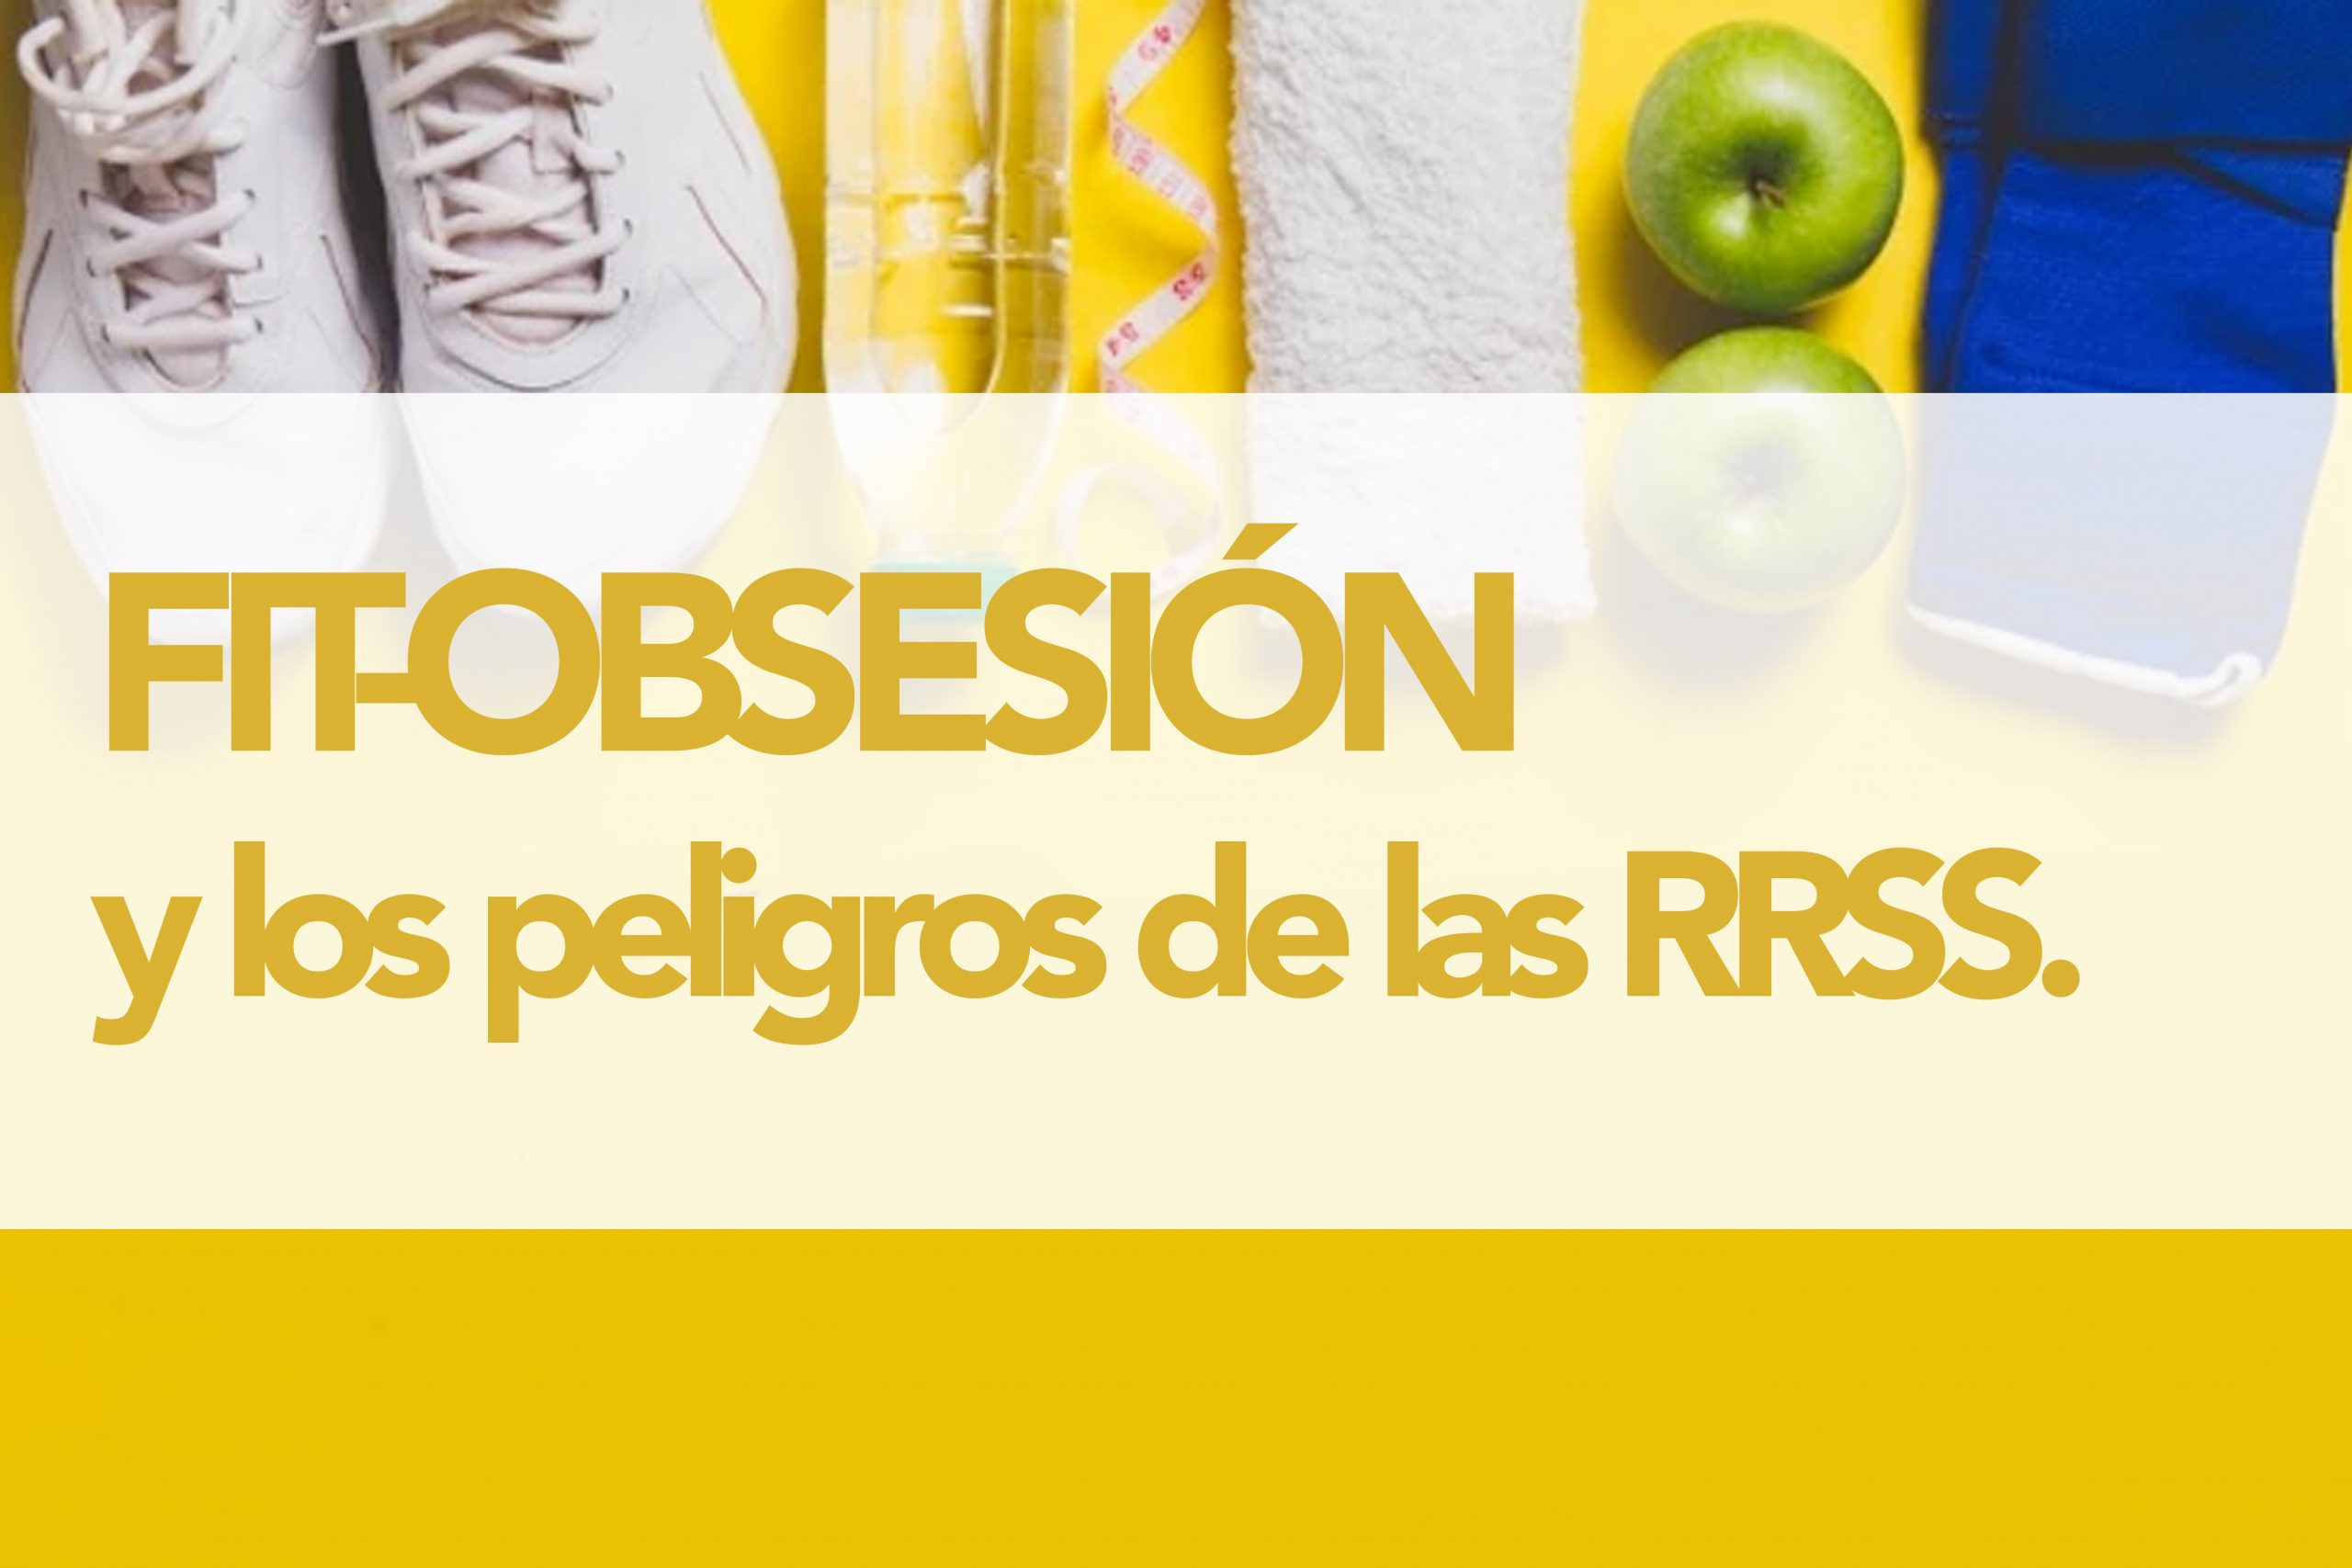 fit-obsesion